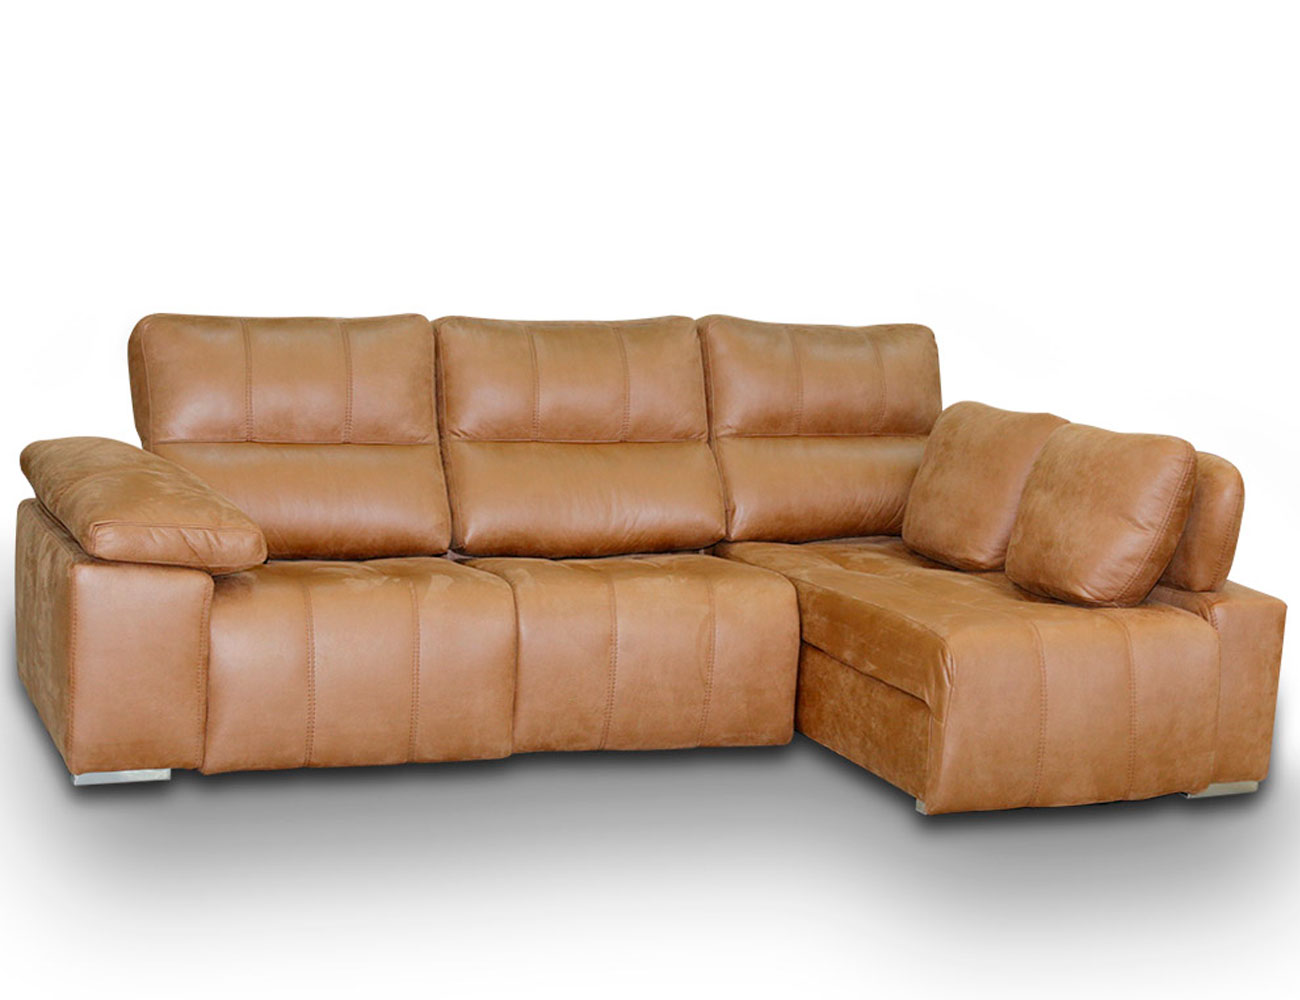 Sofa chaiselongue relax 2 motores anti manchas28